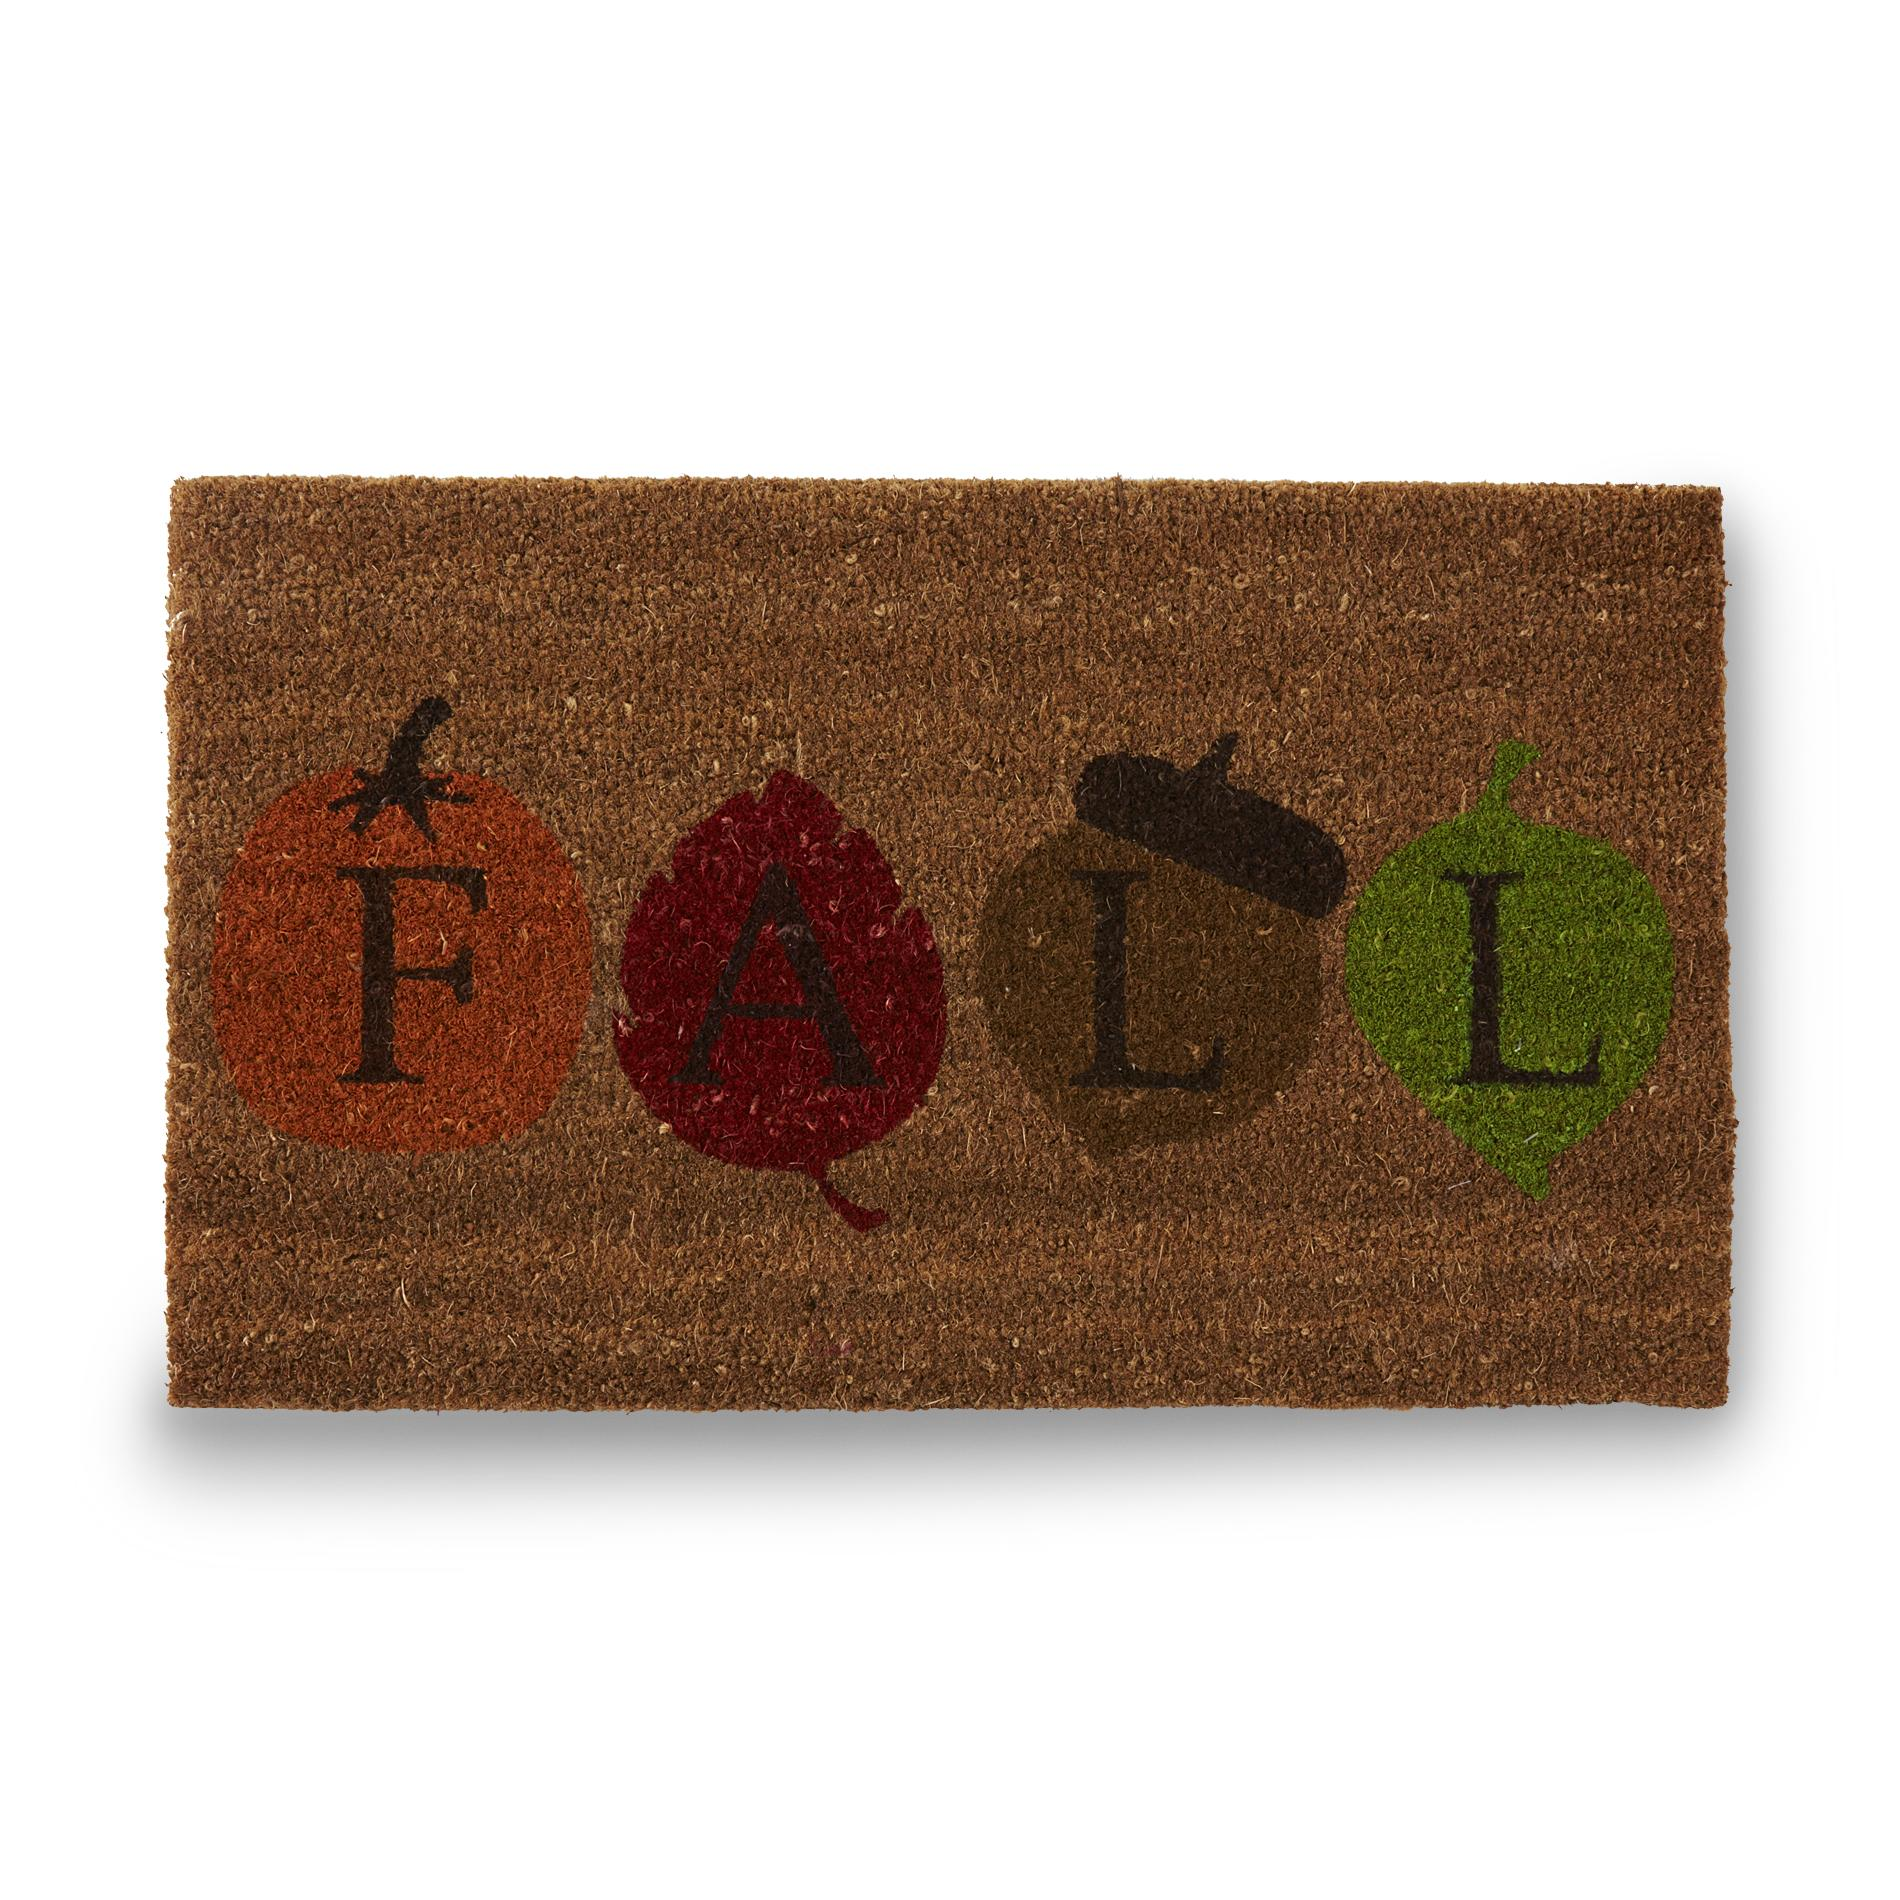 Allure Coir Doormat Fall Home Home Decor Rugs